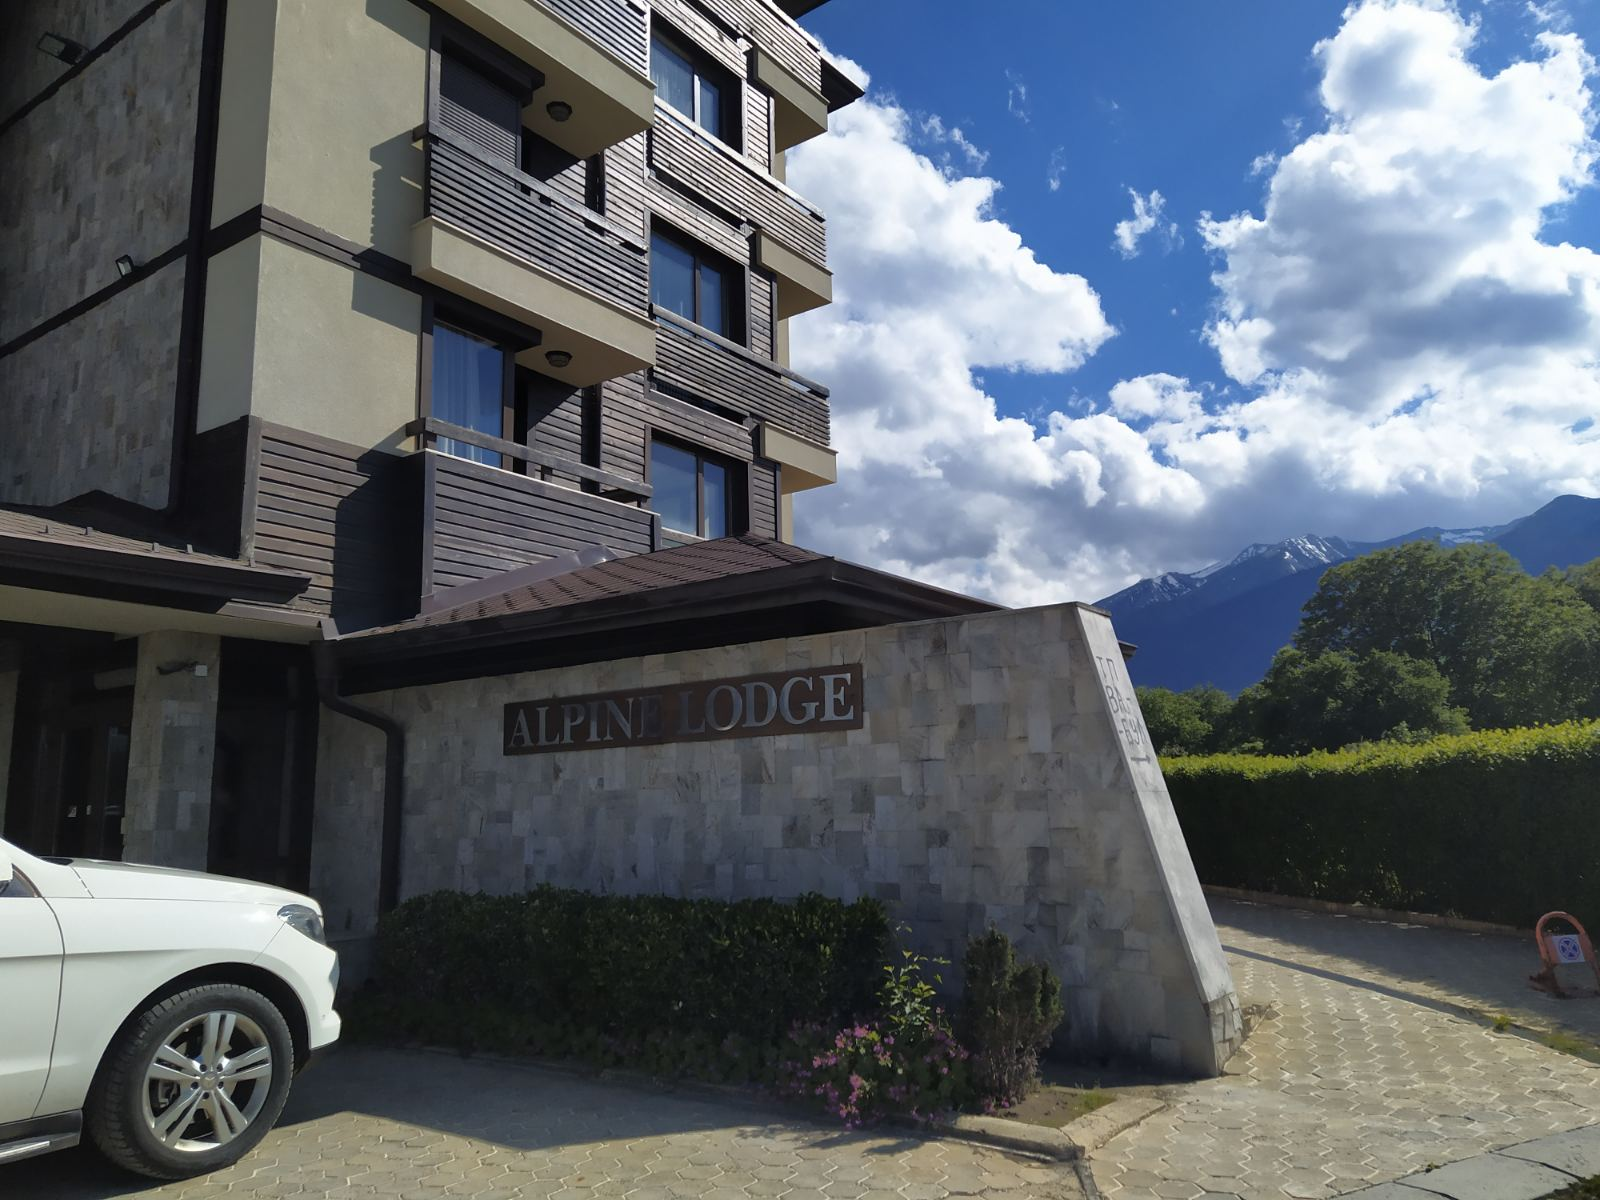 one-bedroom apartment for sale in alpine lodge complex